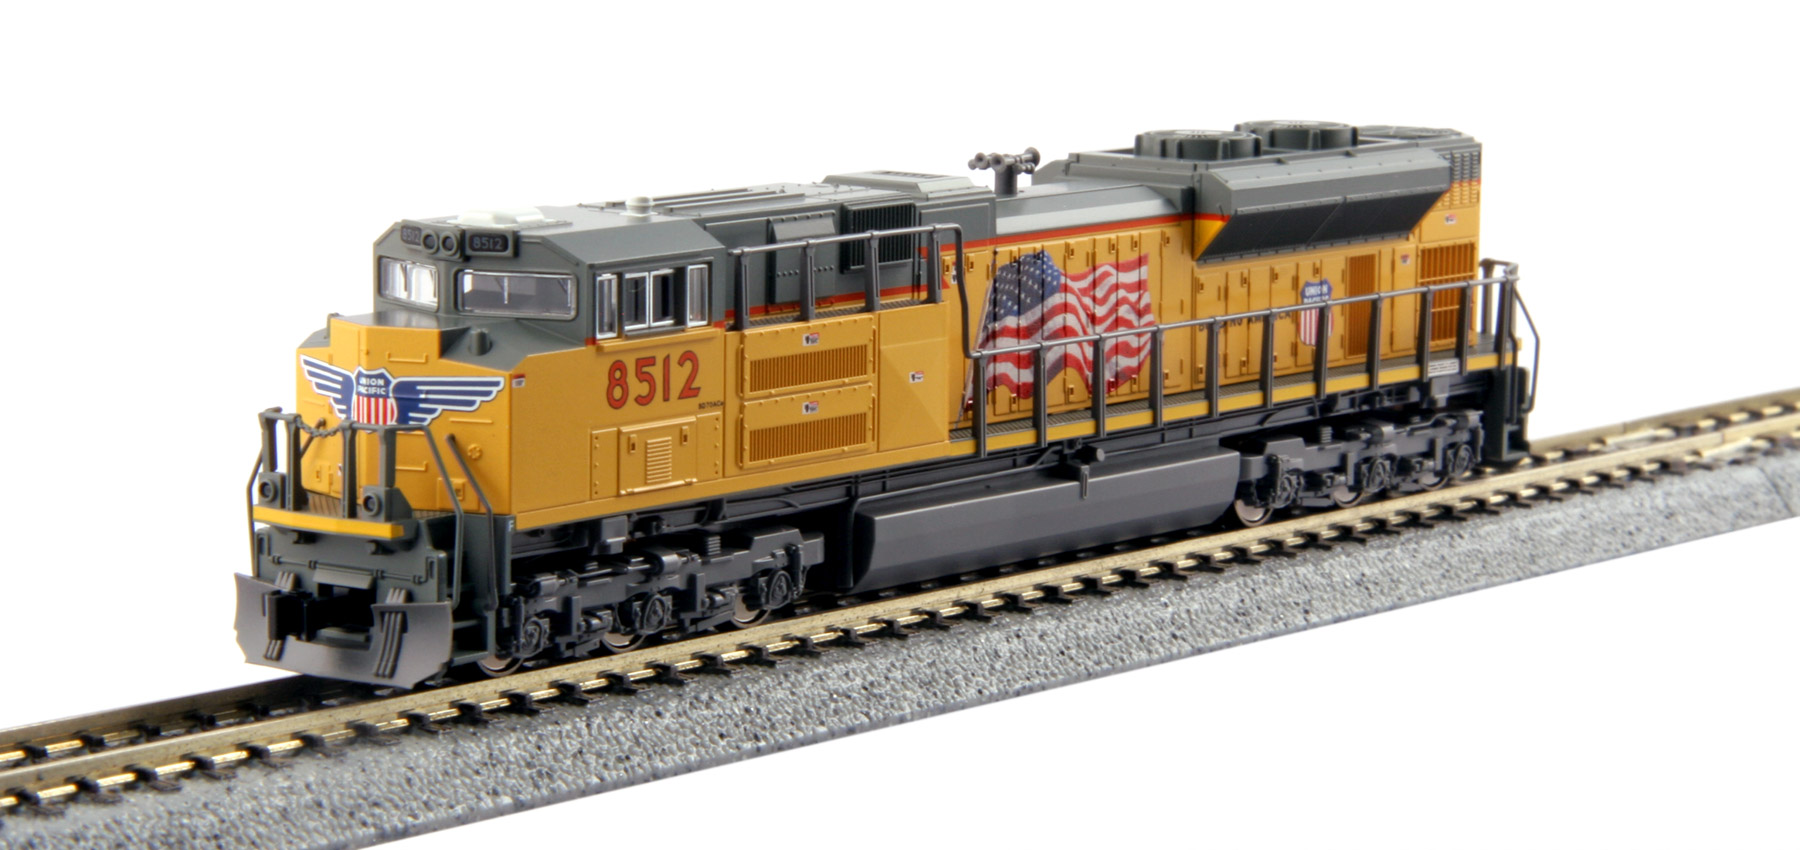 Kato 176-8433 N Union Pacific EMD SD70ACe #8512 This is a Kato 176-8433 N Scale Union Pacific EMD SD70ACe #8512. The SD70ACe is the latest in the line of EMD's 70 locomotives, an evolution of the SD70MAC, although its radiator design harkens more to that of the SD80/90 body. The SD70ACe has been designed to fit the latest EPA standards and regulations, and sports 4300 horsepower. The Union Pacific is one of the largest original buyers of EMD's new ACe units, and continues to add more to their roster. Model Features: Powerful Kato mechanism powered by a 5-pole flywheel motor and featuring a 9 3/4 minimum turning radius. Directional Headlight and illuminated, preprinted numberboards. Illuminated ditch lights. DCC Friendly mechanism ready for drop-in decoder installation.Condition: Factory New (C-9All original; unused; factory rubs and evidence of handling, shipping and factory test run.Standards for all toy train related accessory items apply to the visual appearance of the item and do not consider the operating functionality of the equipment.Condition and Grading Standards are subjective, at best, and are intended to act as a guide. )Operational Status: FunctionalThis item is brand new from the factory.Original Box: Yes (P-9May have store stamps and price tags. Has inner liners.)Manufacturer: KatoModel Number: 176-8433Road Name: Union PacificMSRP: $130.00Scale/Era: N ScaleModel Type: Diesel LocoAvailability: Ships in 2 Business Days!The Trainz SKU for this item is P12170799. Track: 12170799 - No Location Assigned - 001 - TrainzAuctionGroup00UNK - TDIDUNK